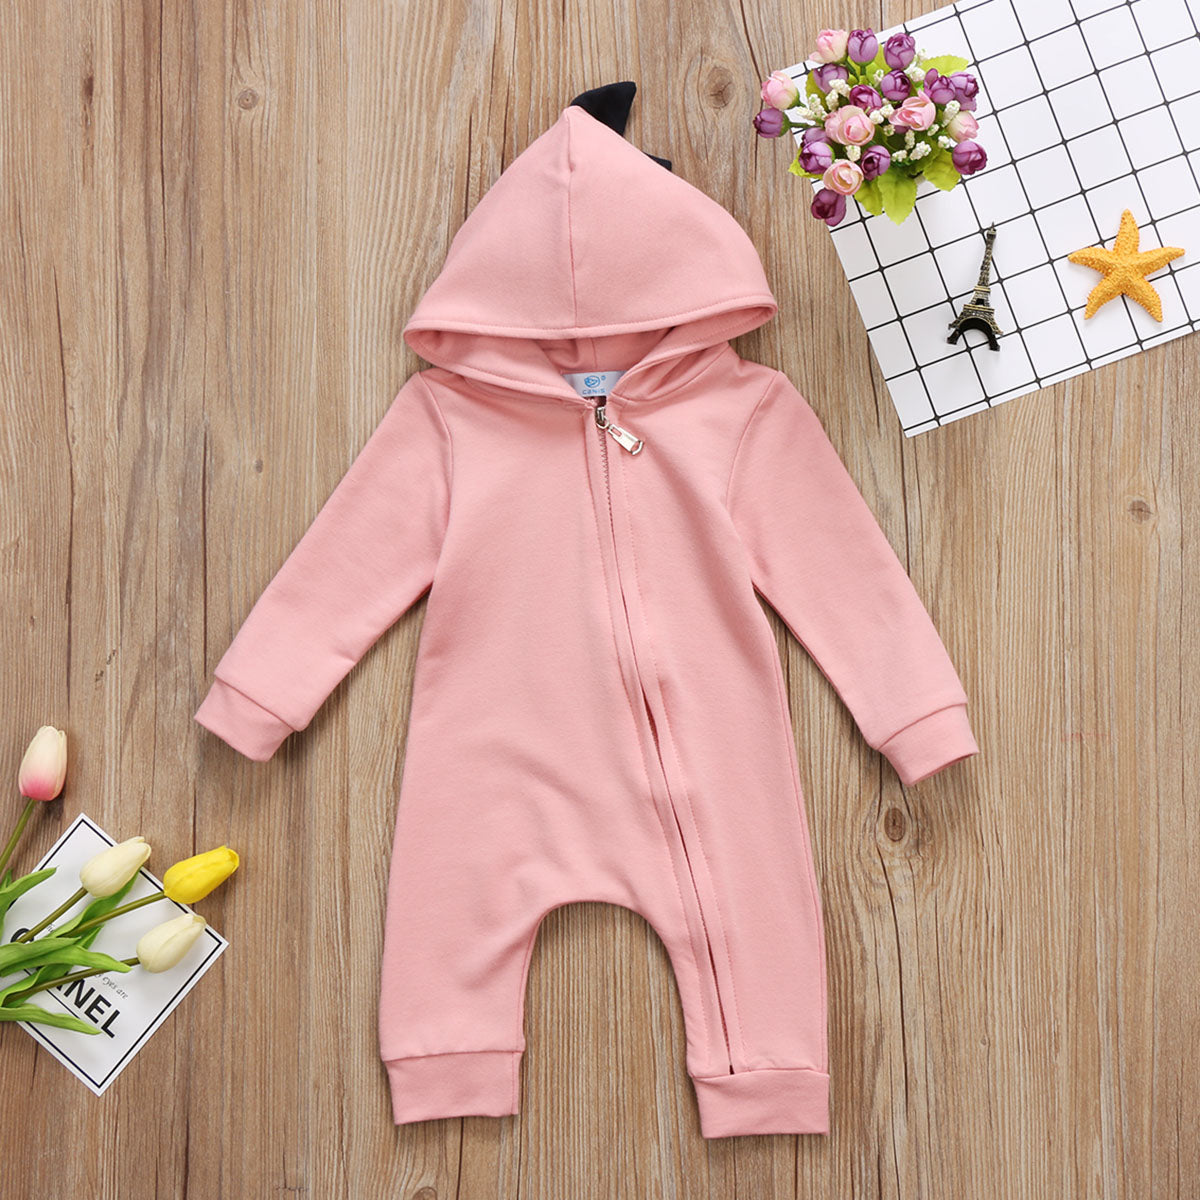 Dinosaur Design Hooded Long Sleeve Romper (2colours)